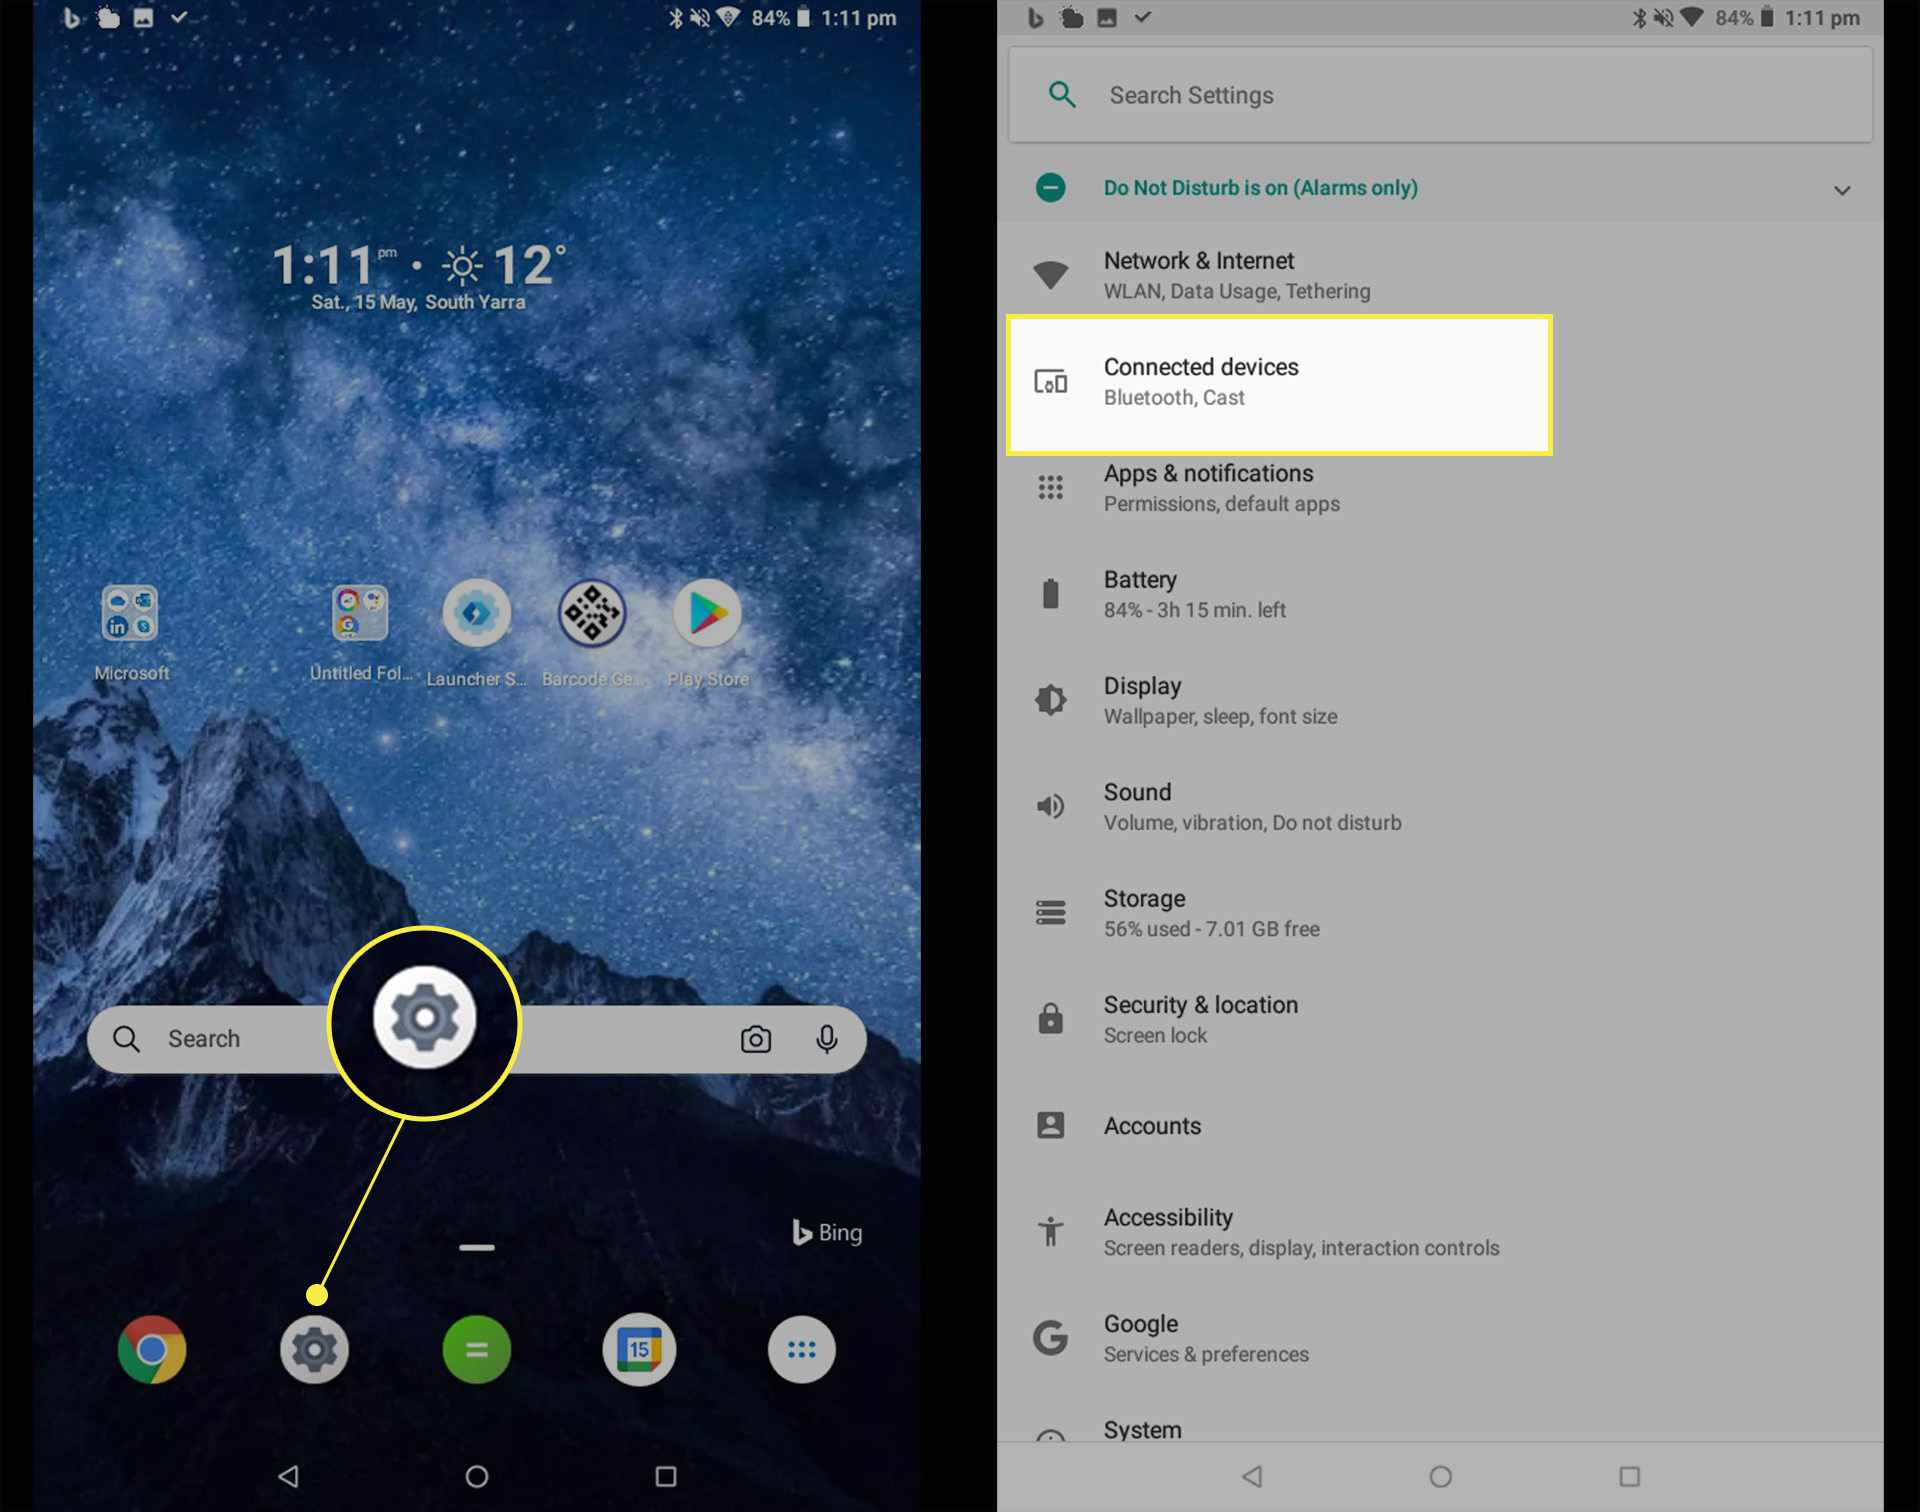 Android settings and connected devices highlighted